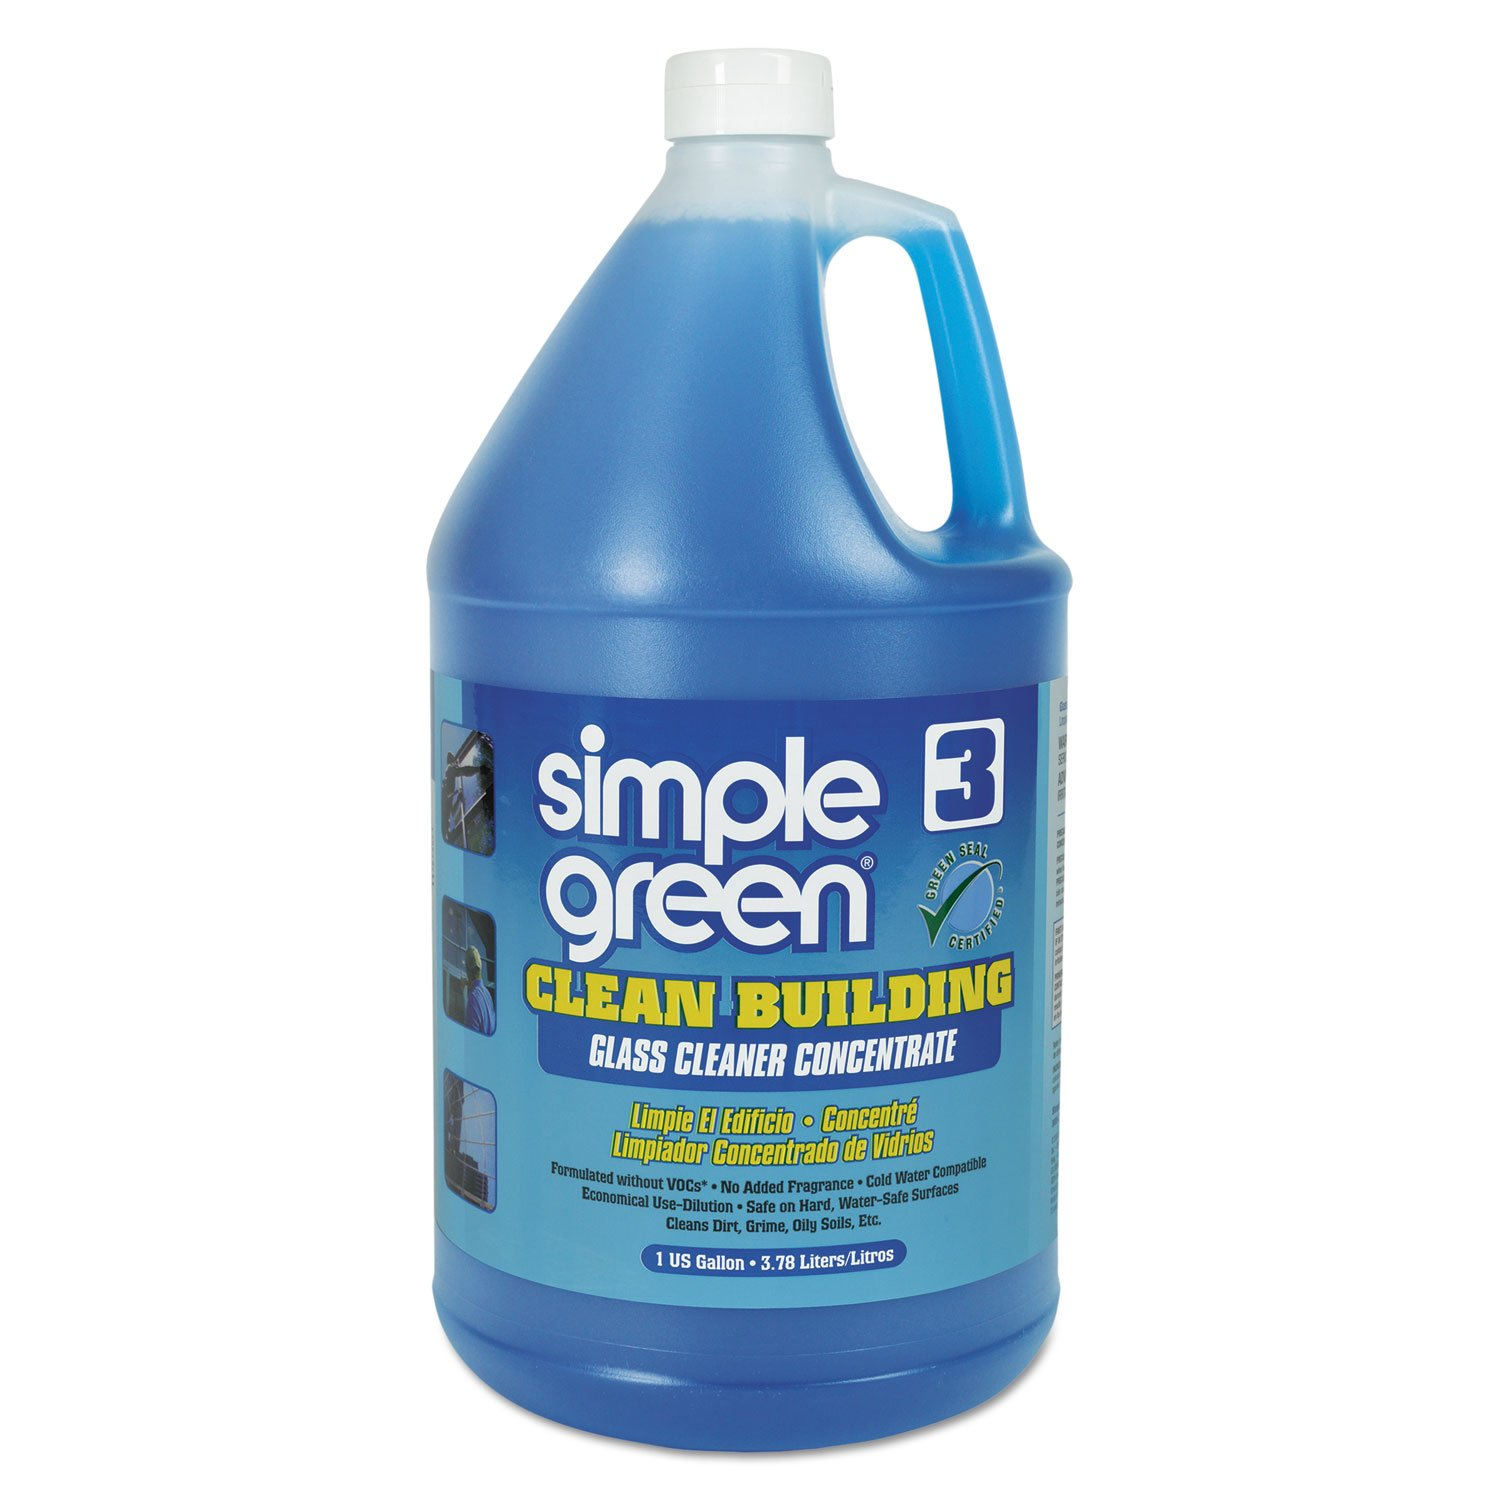 Simple Green 11301 Clean Building Glass Cleaner Concentrate, Unscented, 1gal Bottle (Case of 2) by SIMPLE GREEN